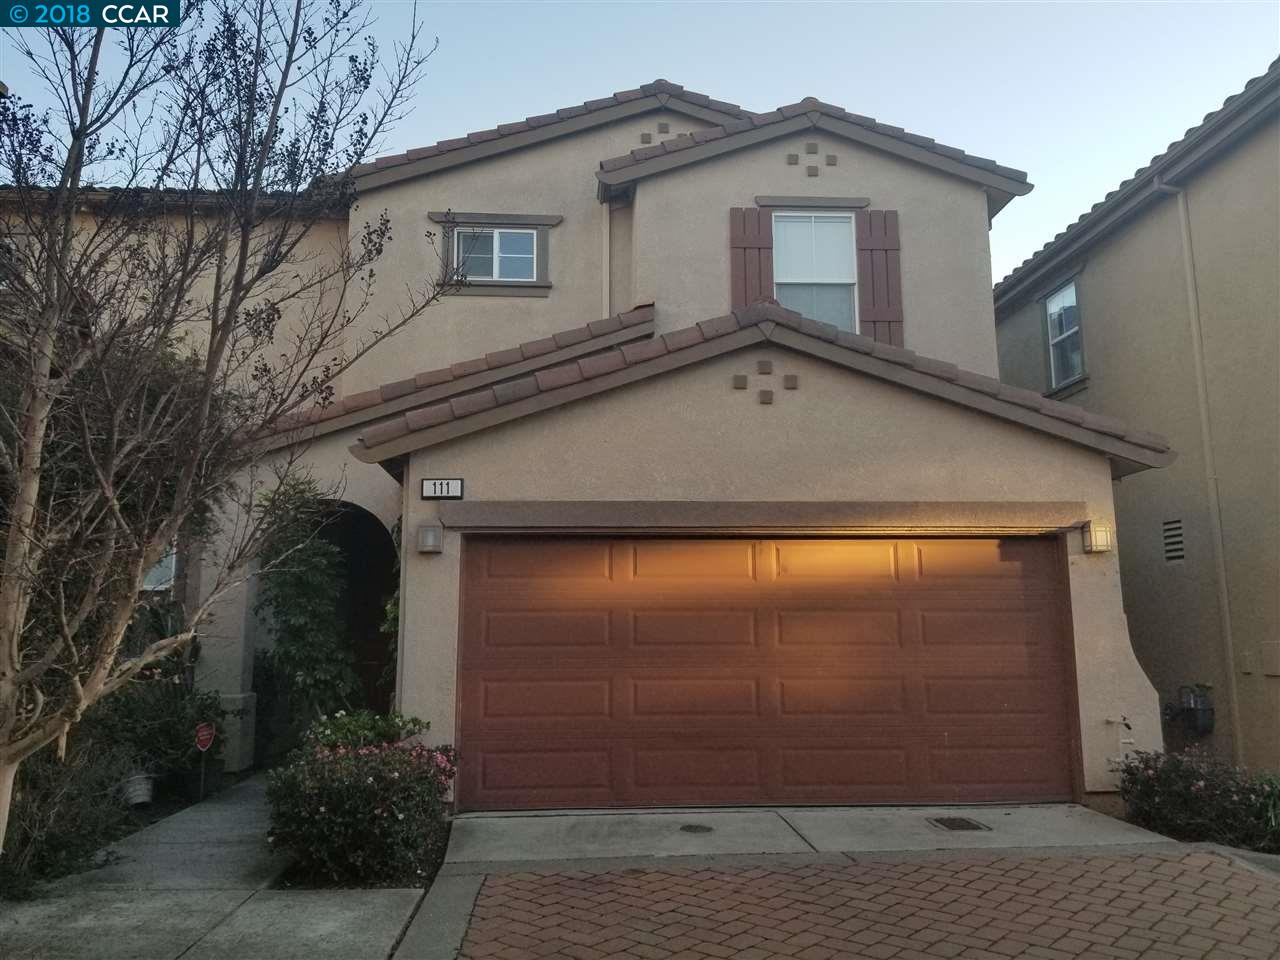 Single Family Home for Sale at 111 San Pedro Street 111 San Pedro Street San Pablo, California 94806 United States